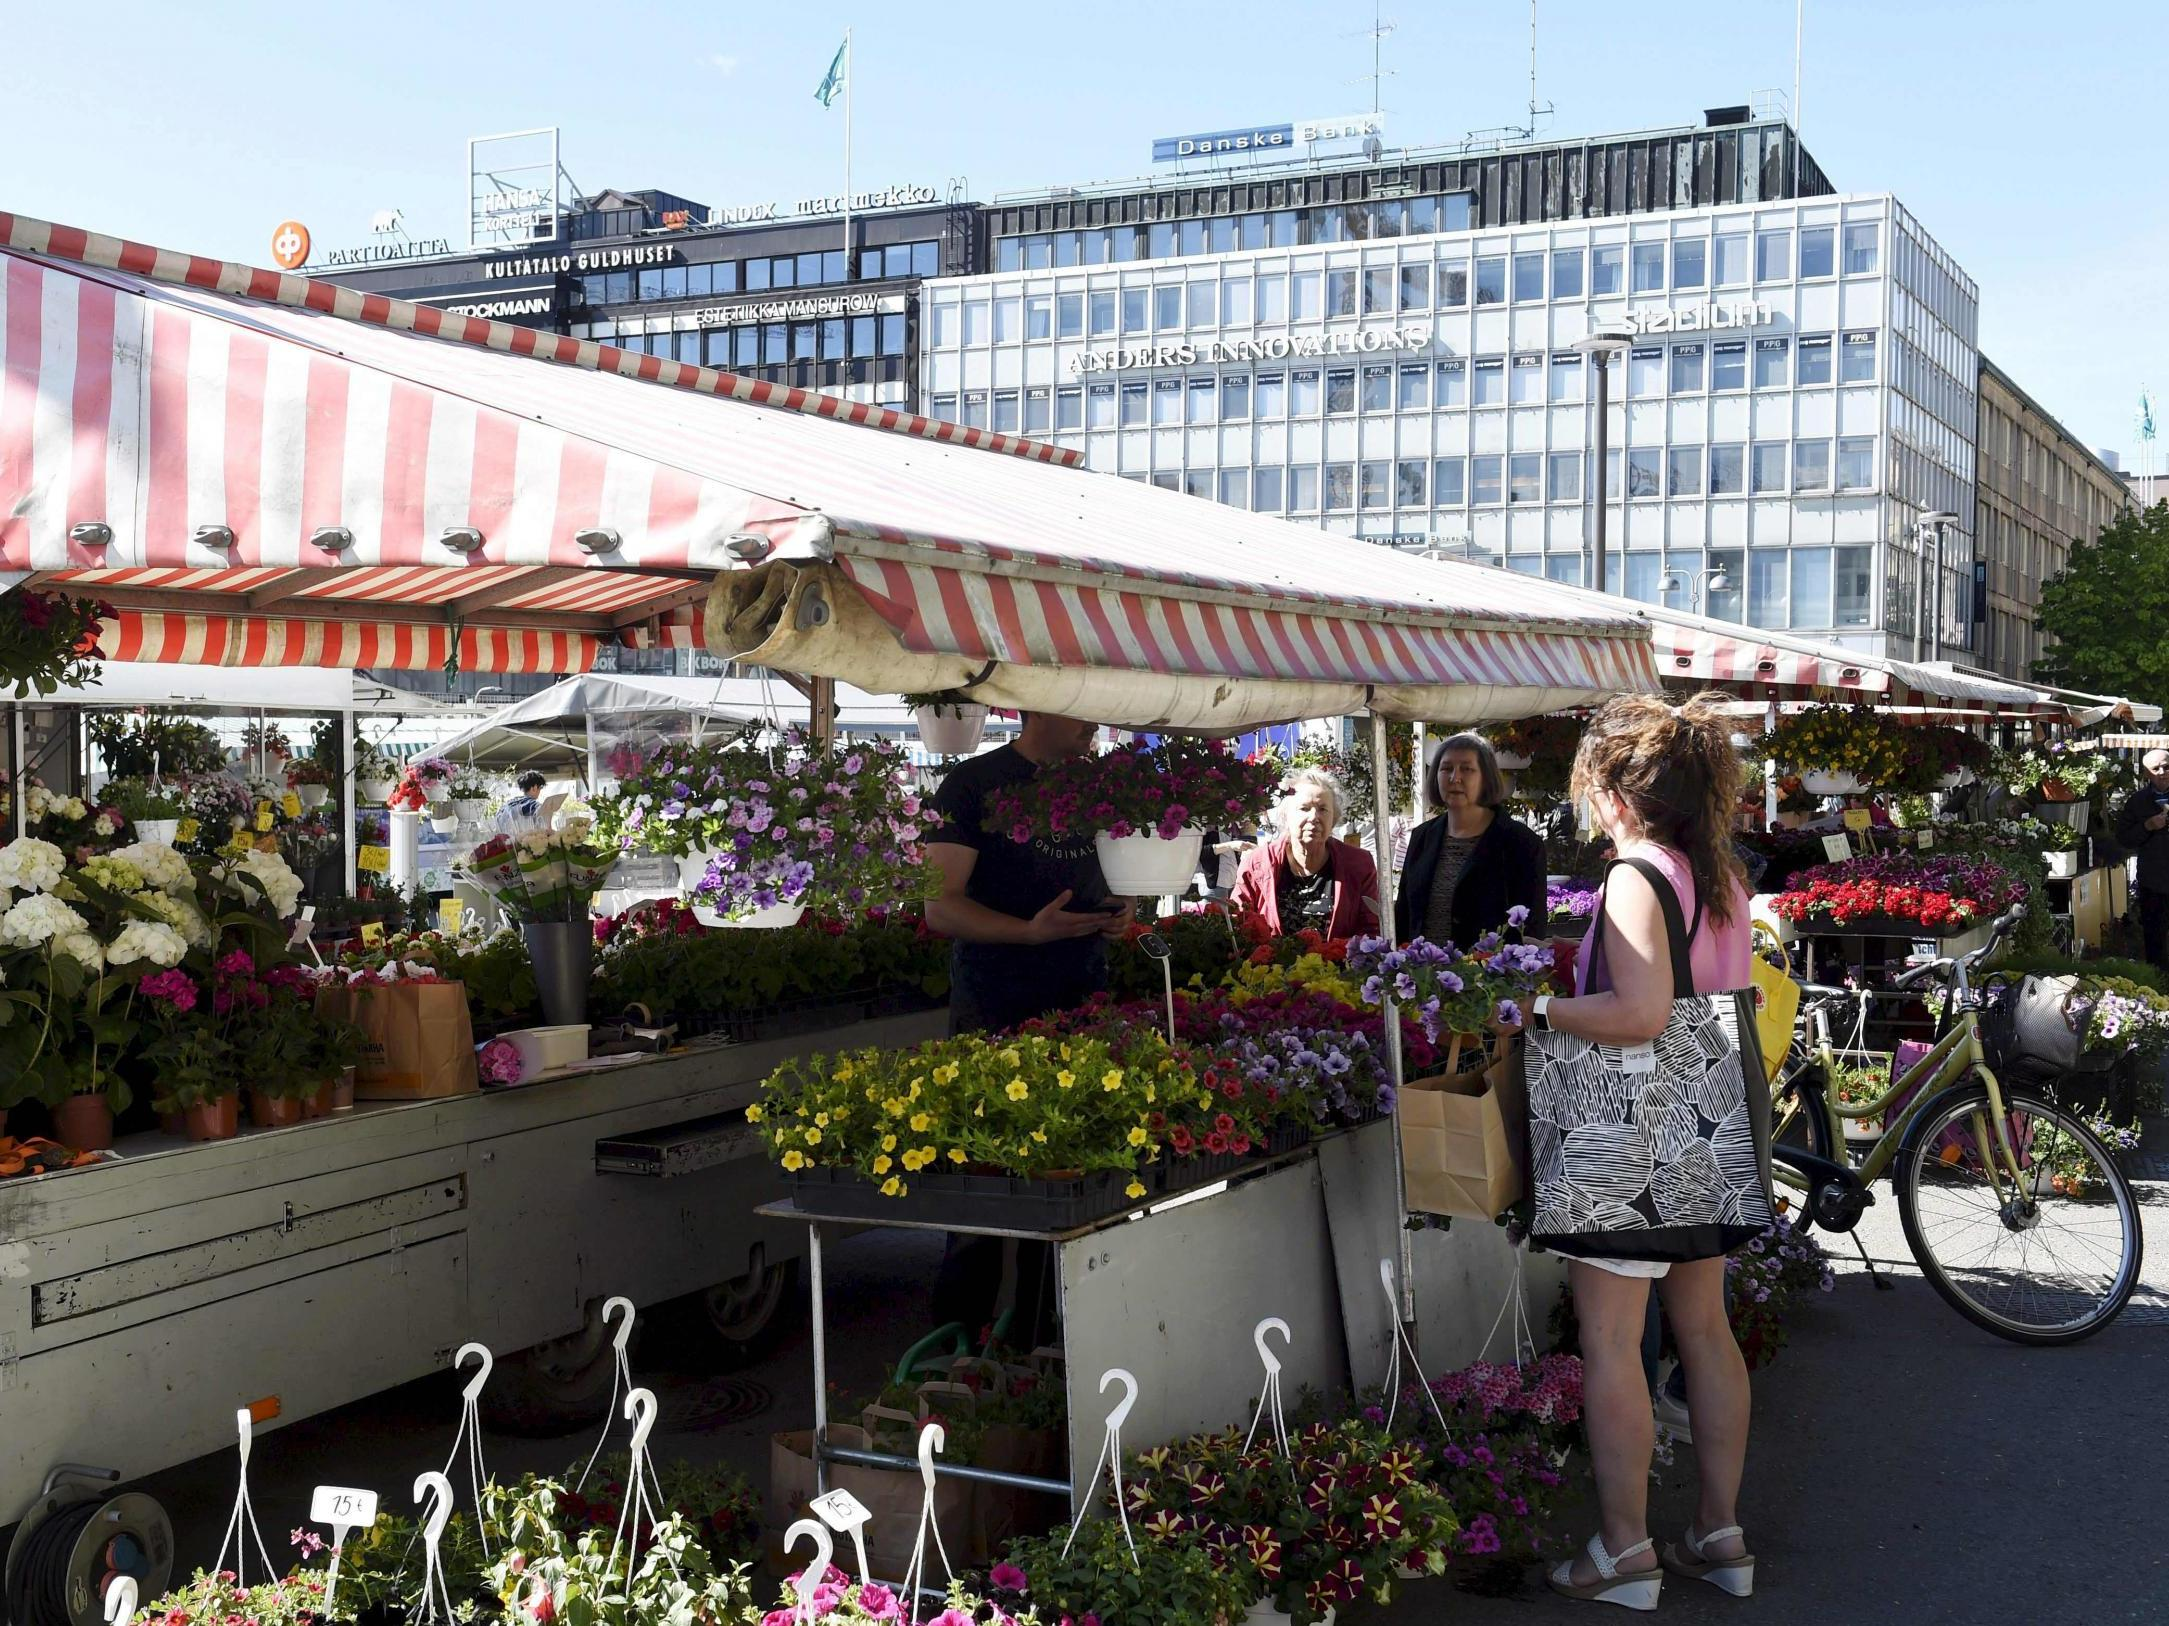 Coronavirus: Restaurants and theatres to reopen in Finland, as Europe continues to ease lockdown